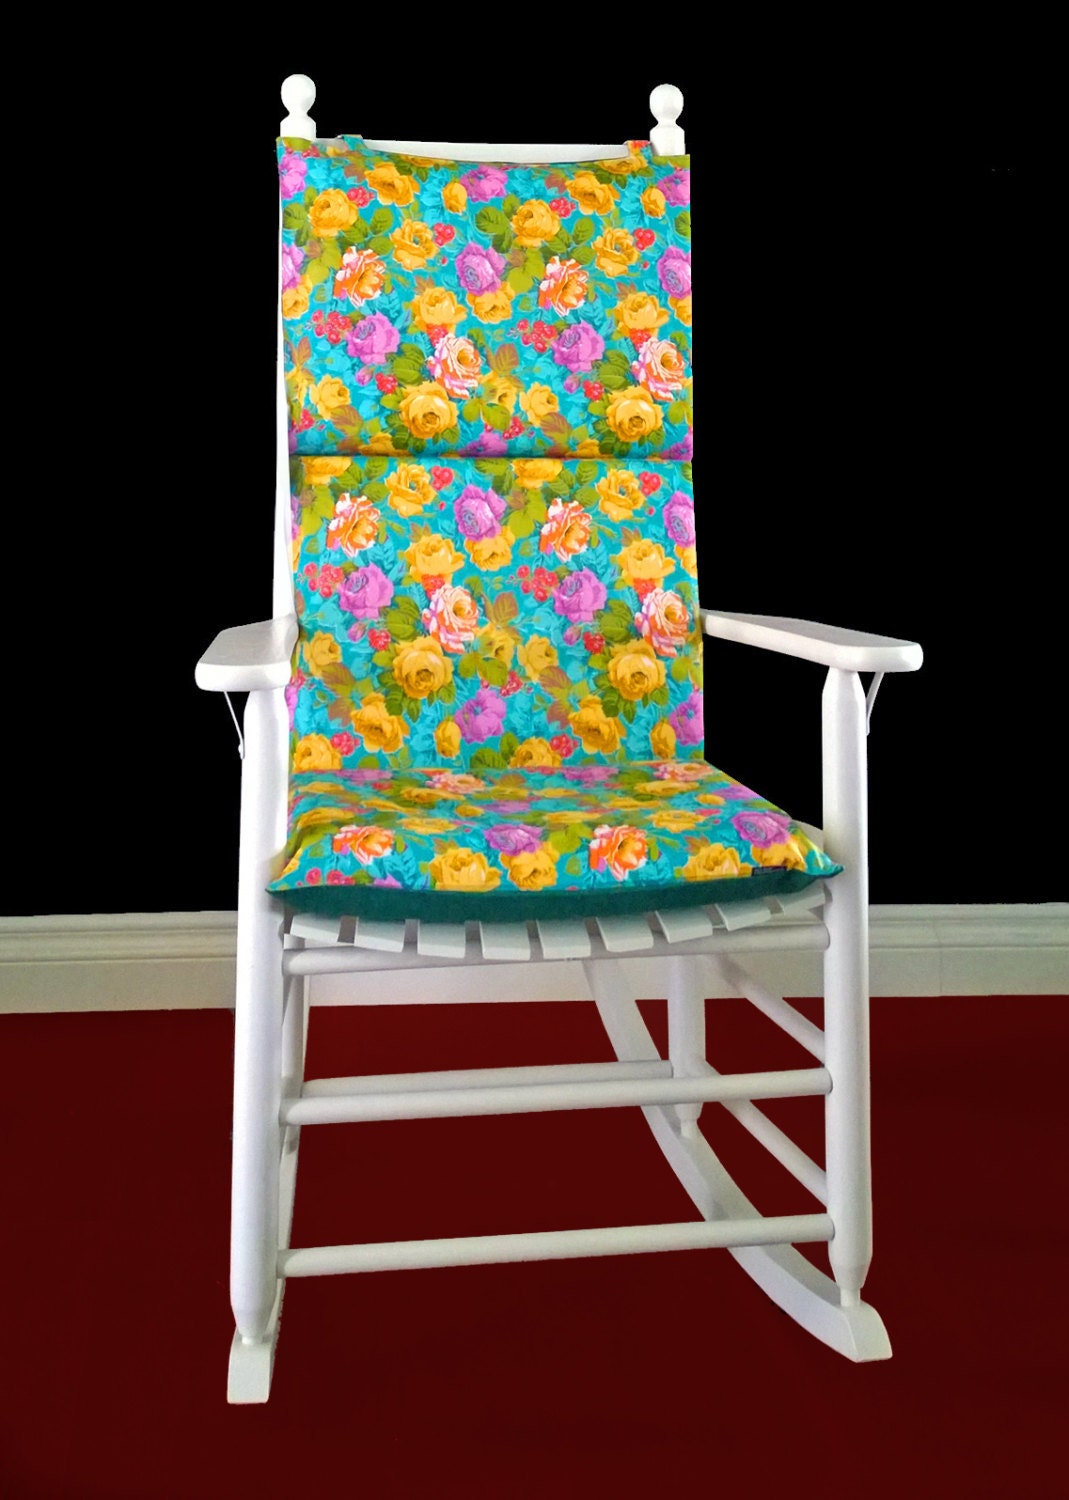 ON SALE Rocking Chair Cushion Turquoise Floral By RockinCushions